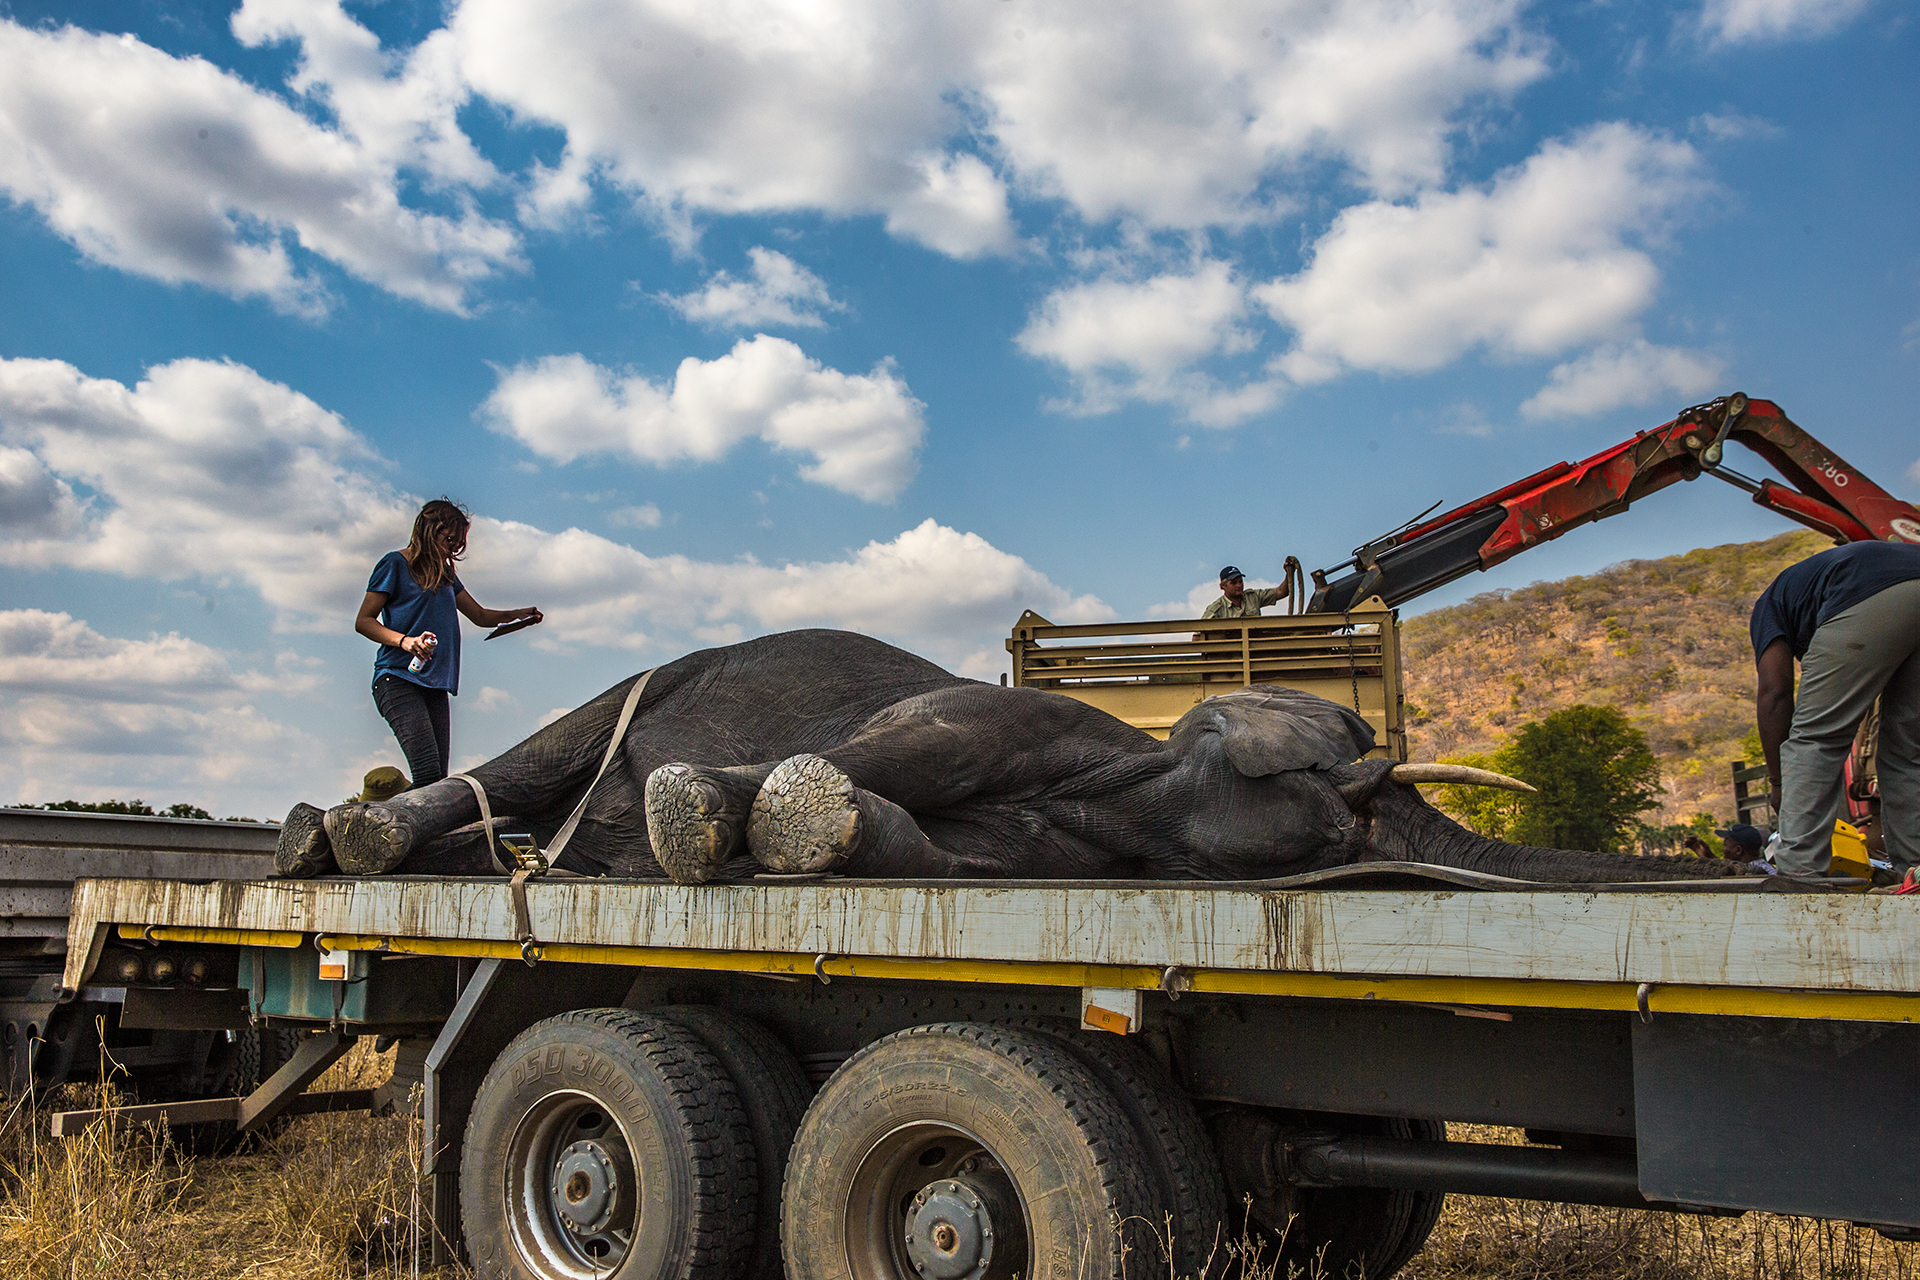 A tranqulised elephant awaits transport. Photo by Anita Mishra.